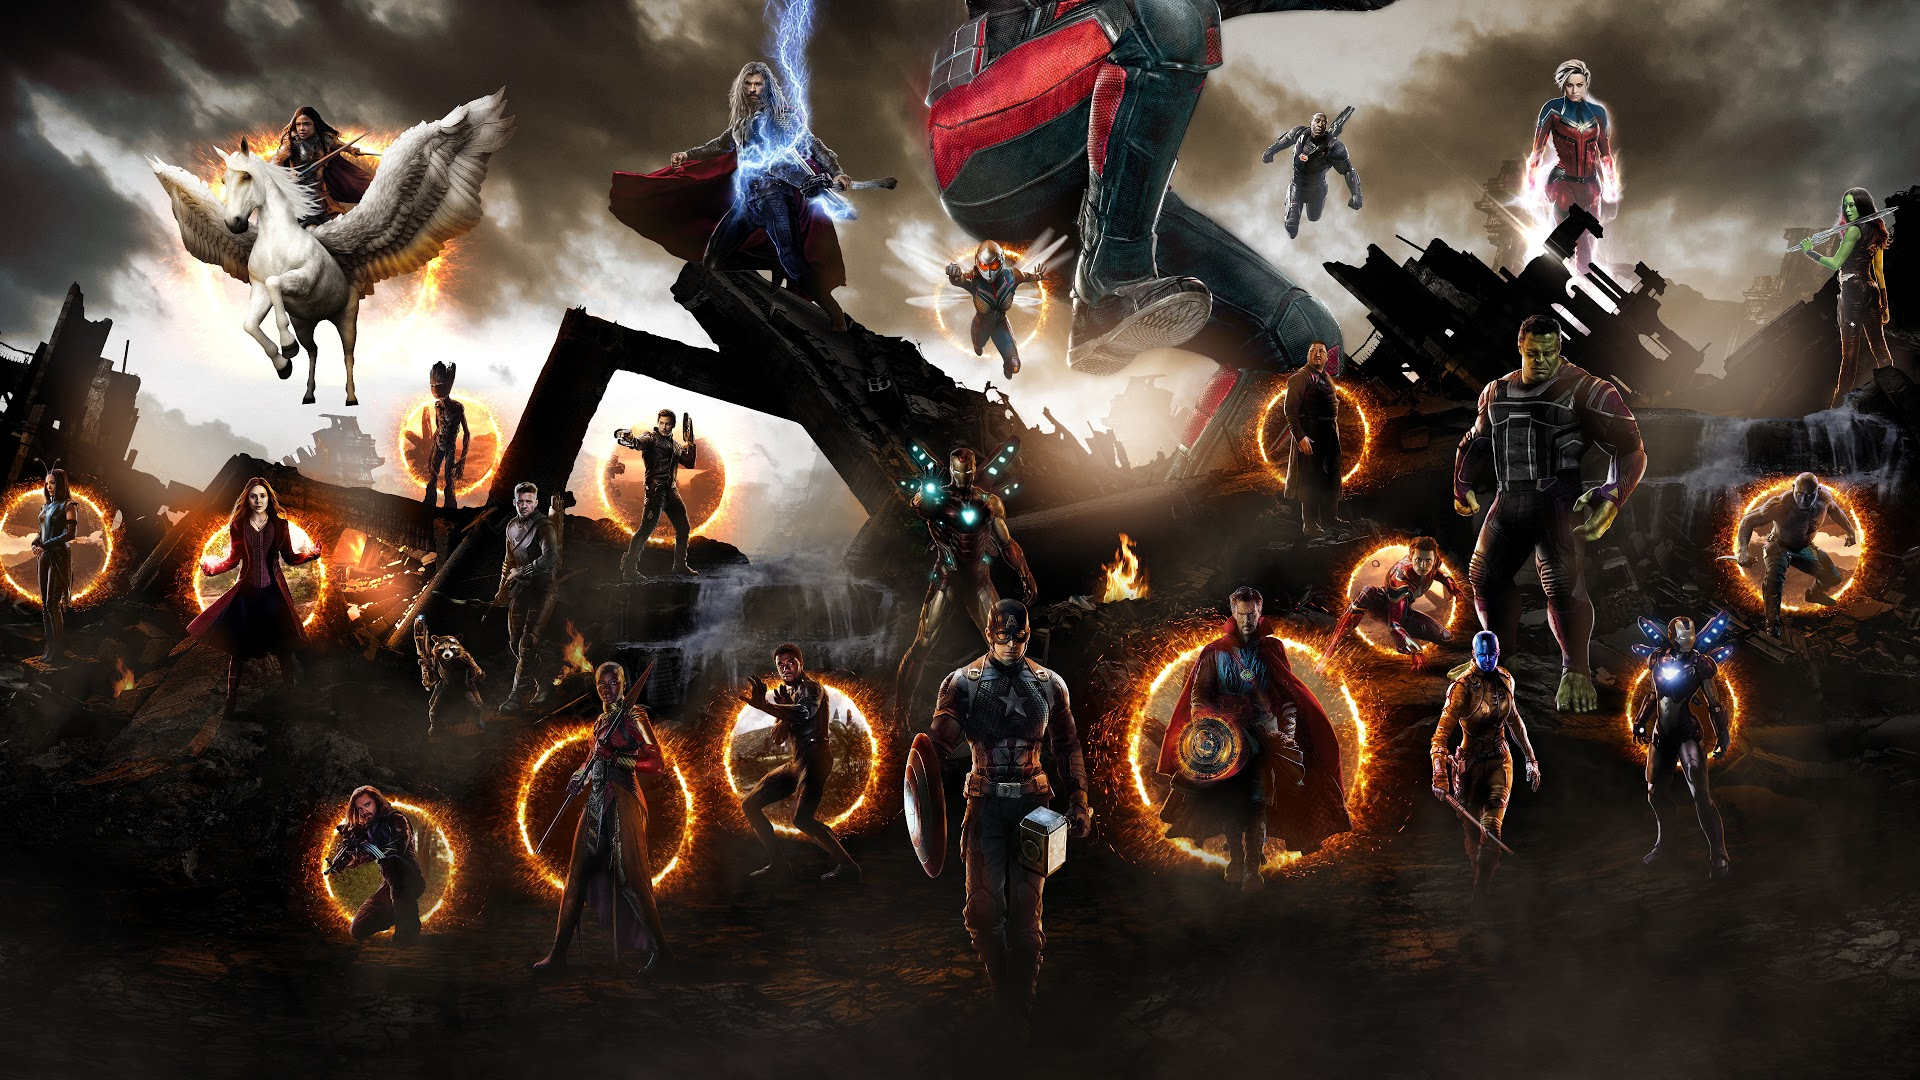 Avengers Wallpaper 1920x1080 Posted By Ethan Mercado